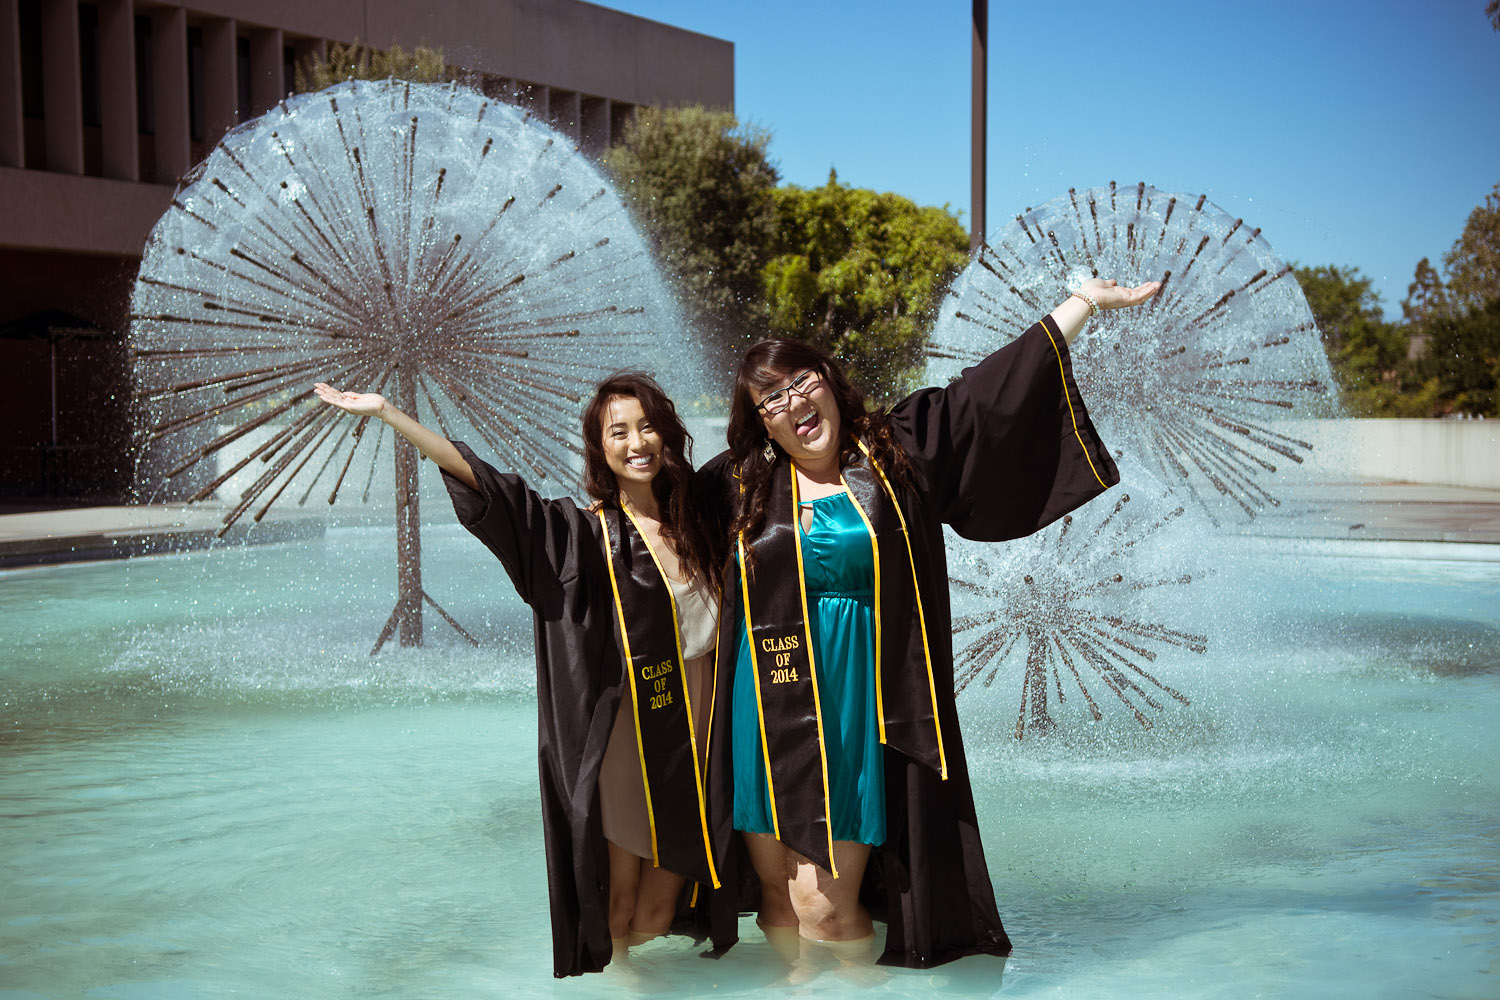 Bryan-Miraflor-Photography-Grad-Portraits-Lim-Chow-Group-20140330-0063.jpg